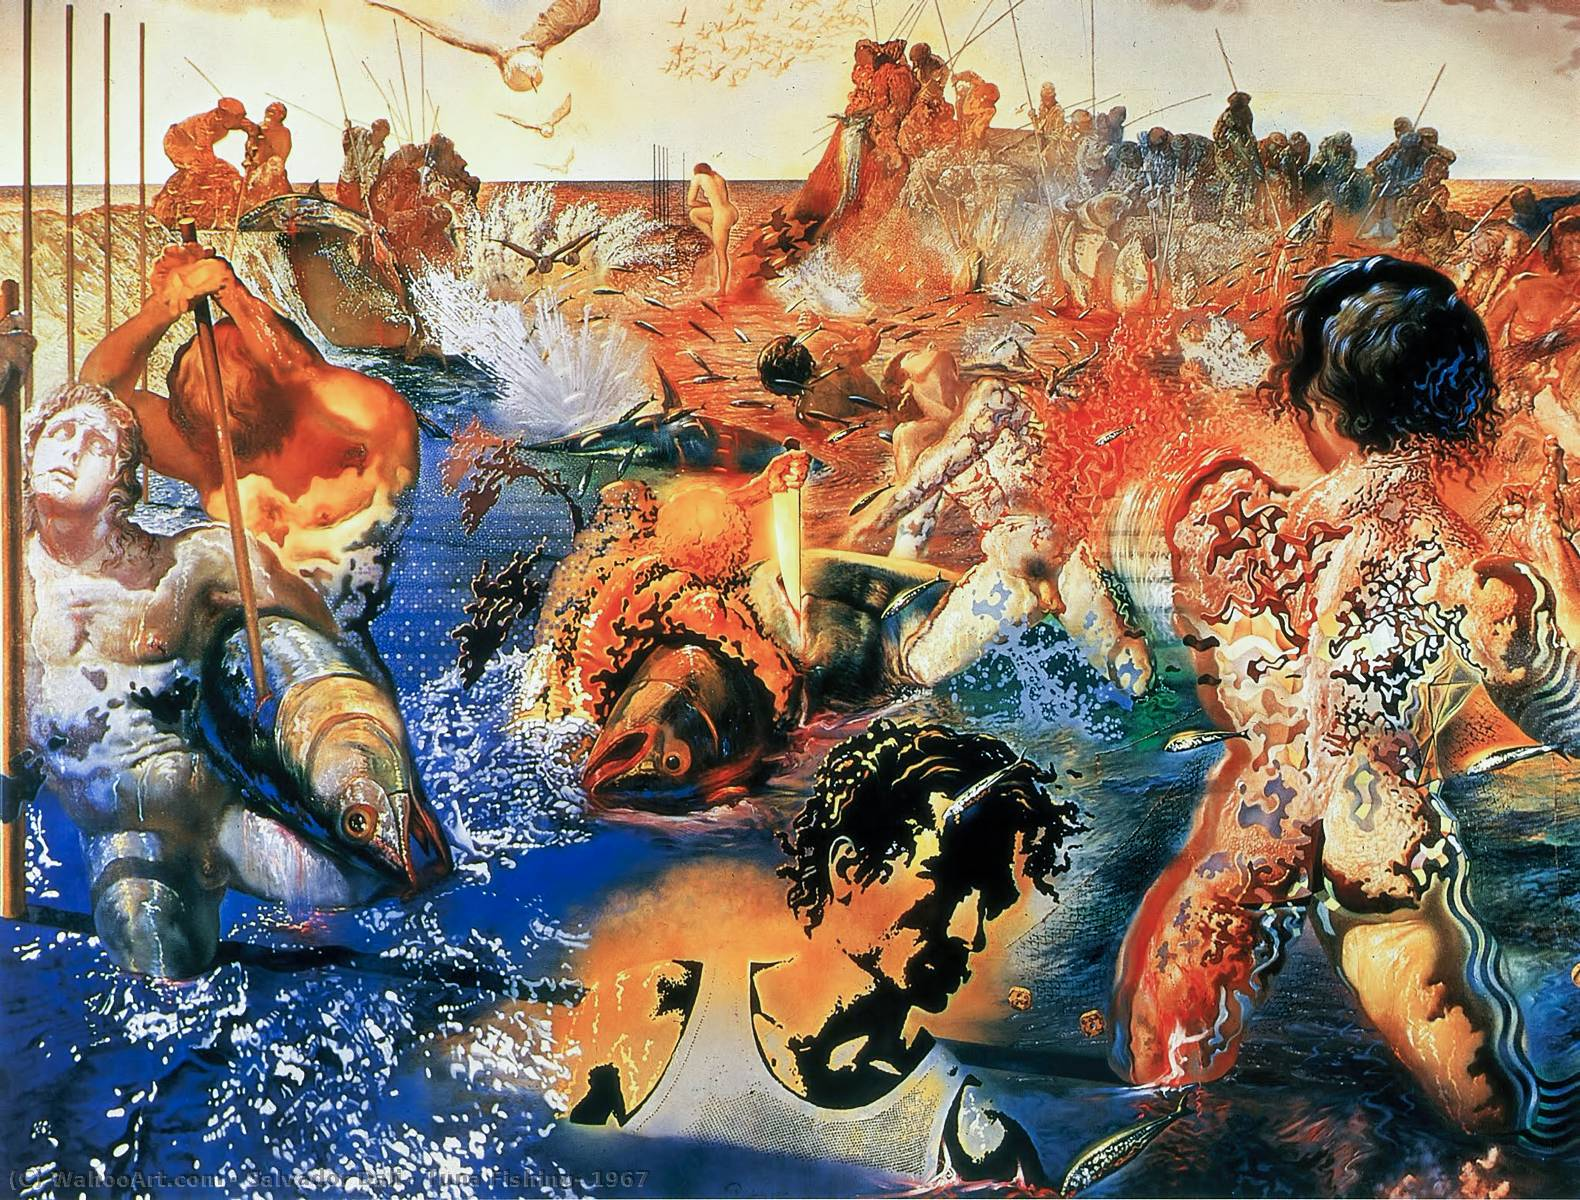 tuna fishing 1967 oil by salvador dali 1938 3183 spain